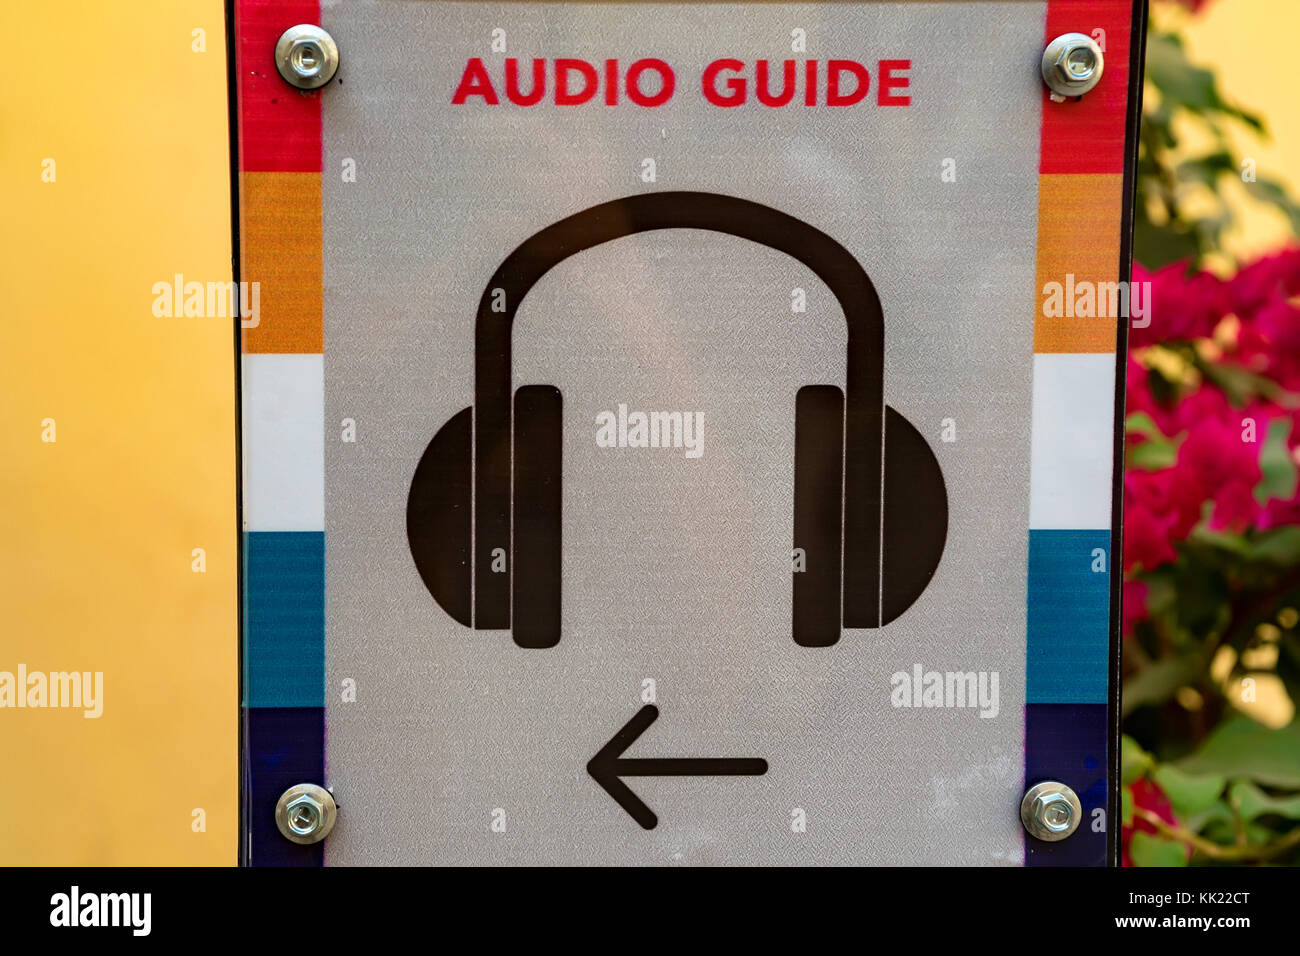 Close up audio guide sign - Stock Image